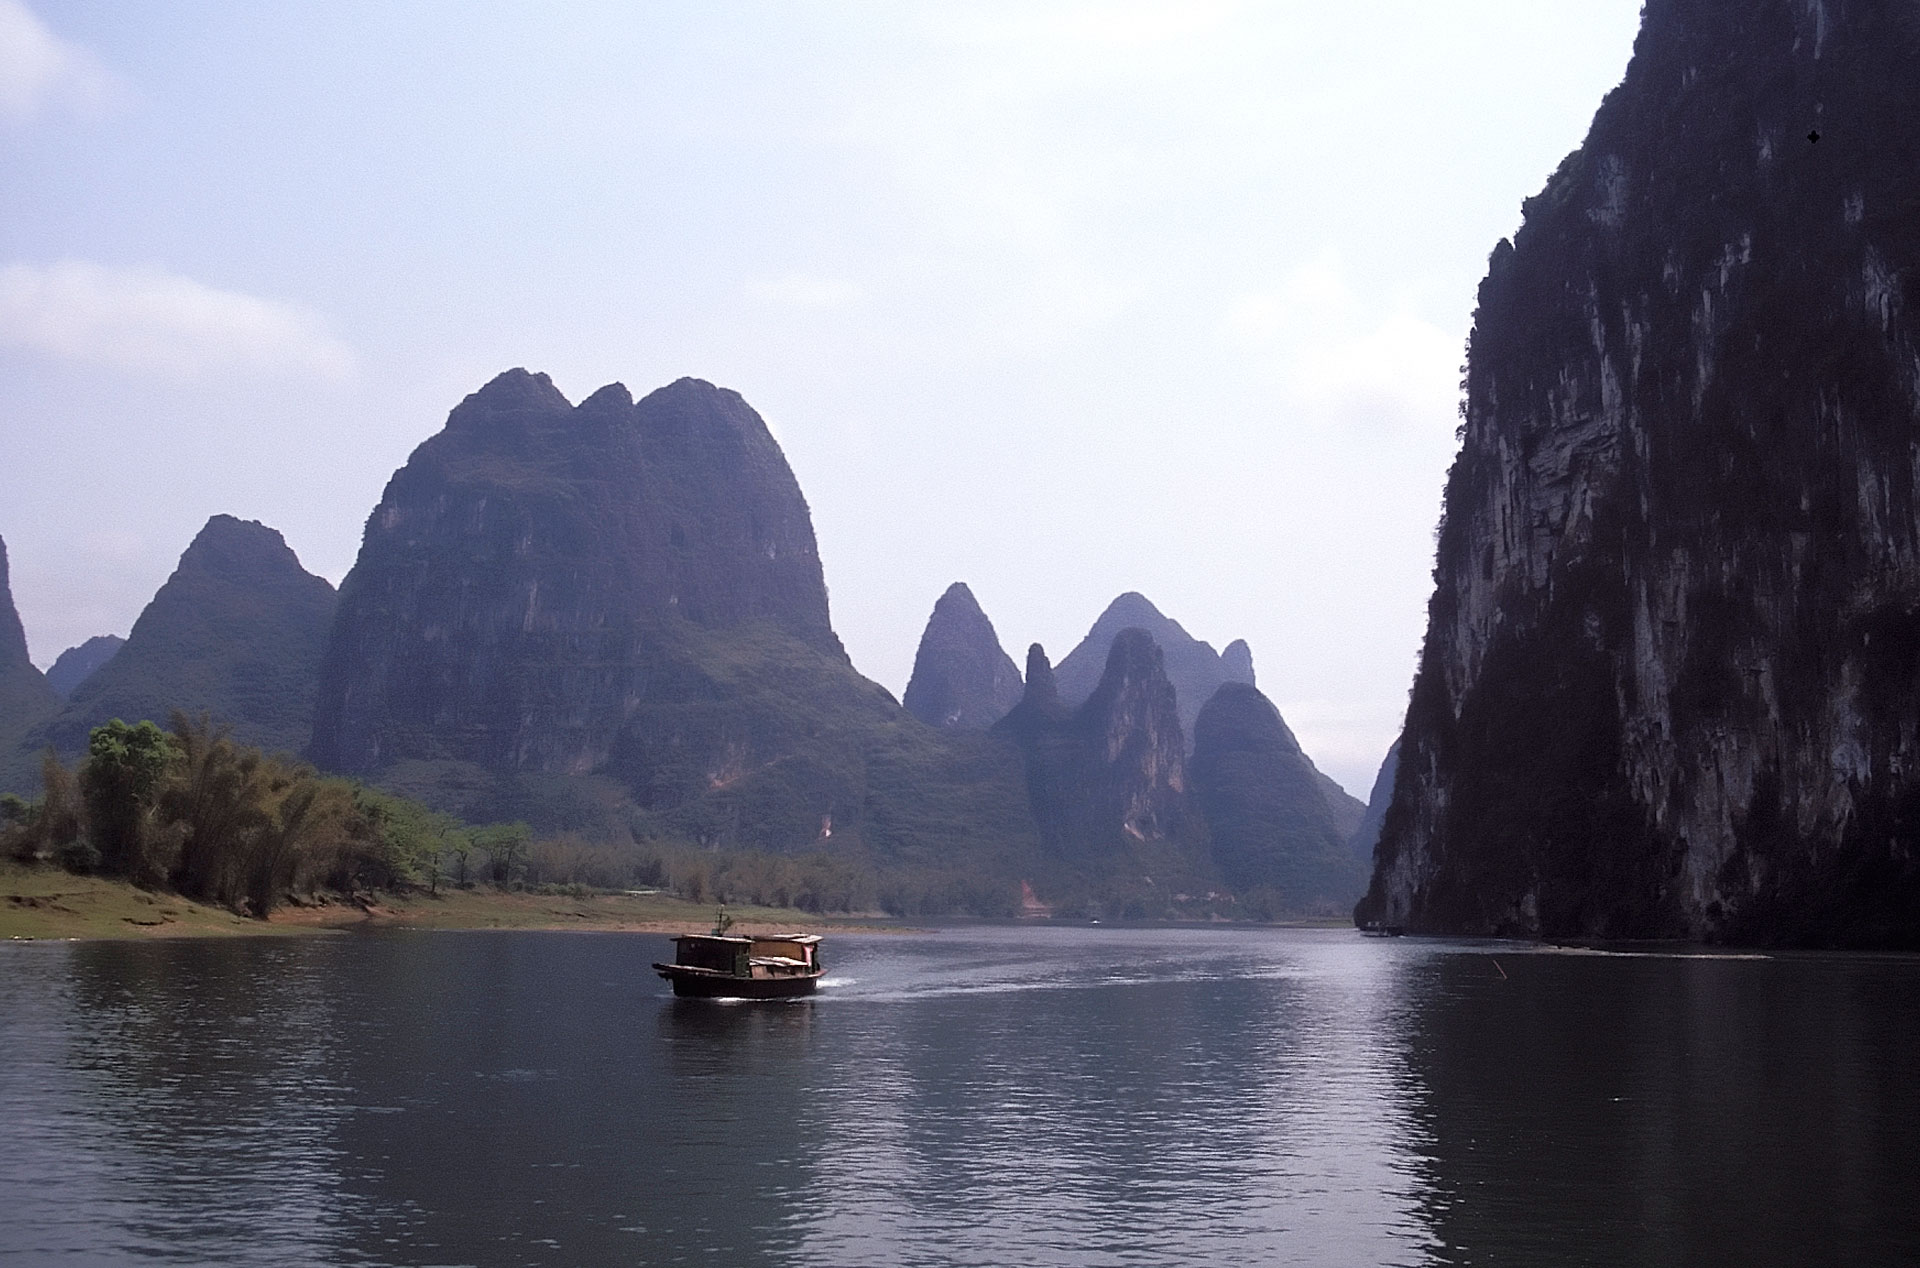 Boat on the Lijiang River surrounded by karst limestone formations, Guangxi, China